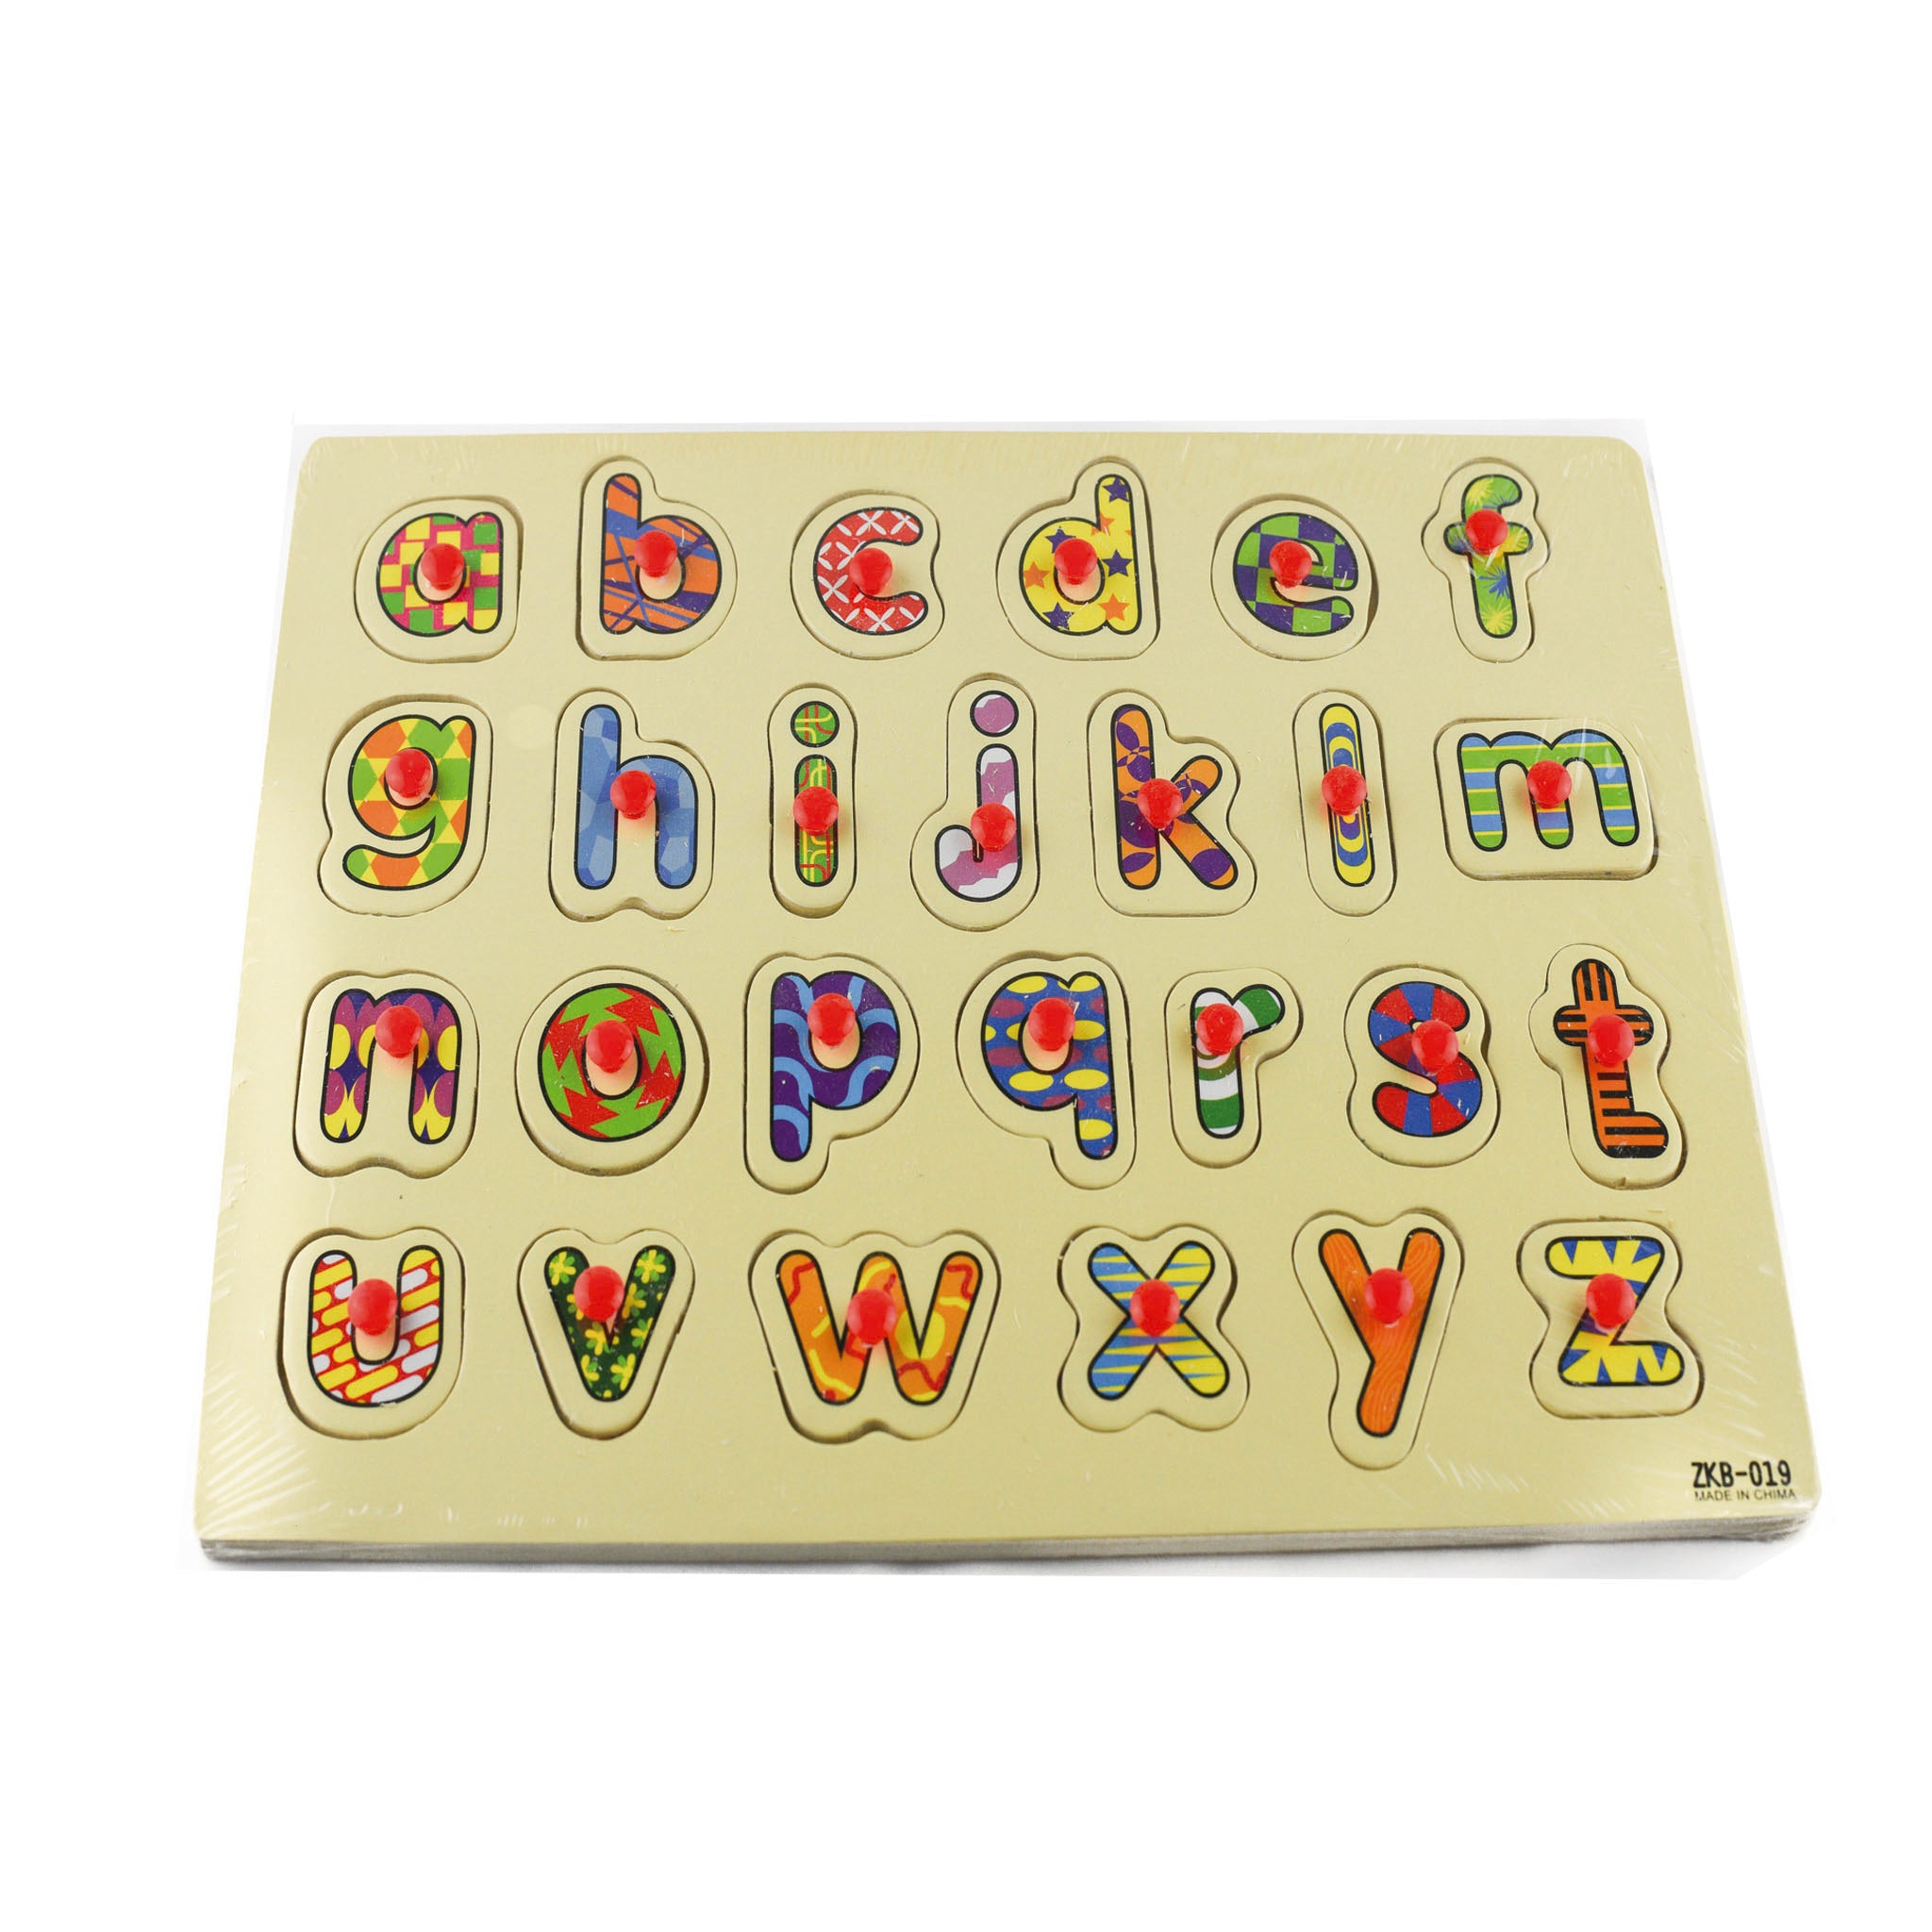 Alphabet Puzzles Wooden Hand Grab Puzzle Educational Toy For Kids - Jubilofun